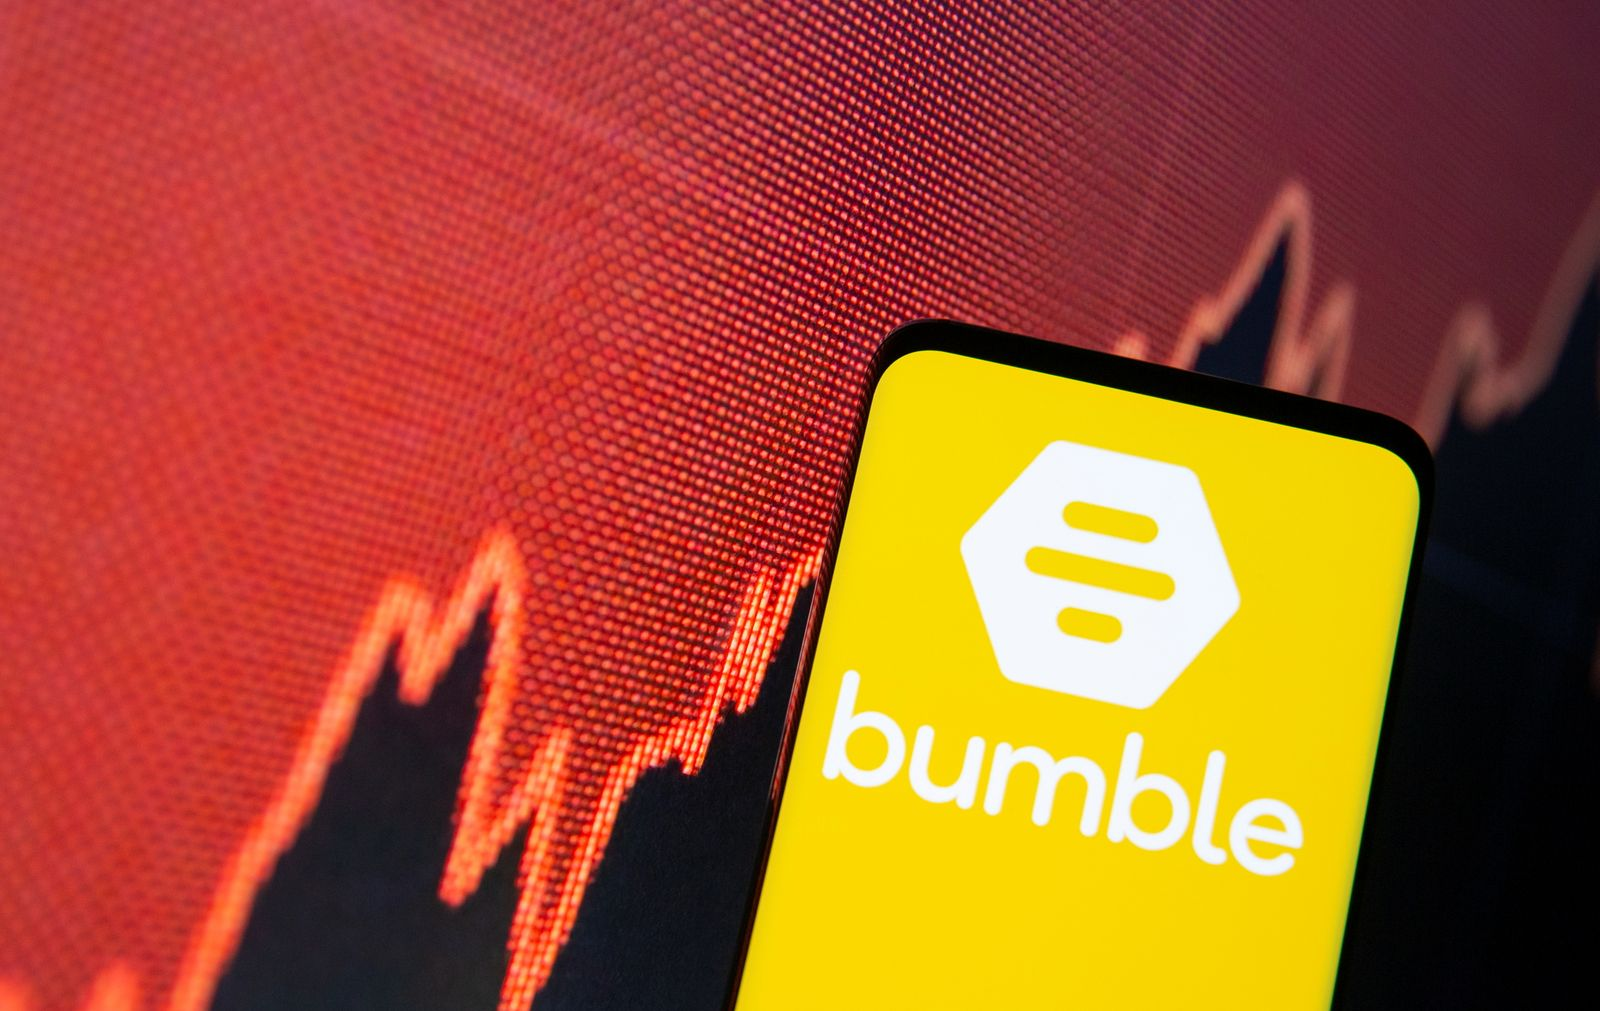 The Bubmble logo is seen on a smartphone in front of a stock graph in this illustration